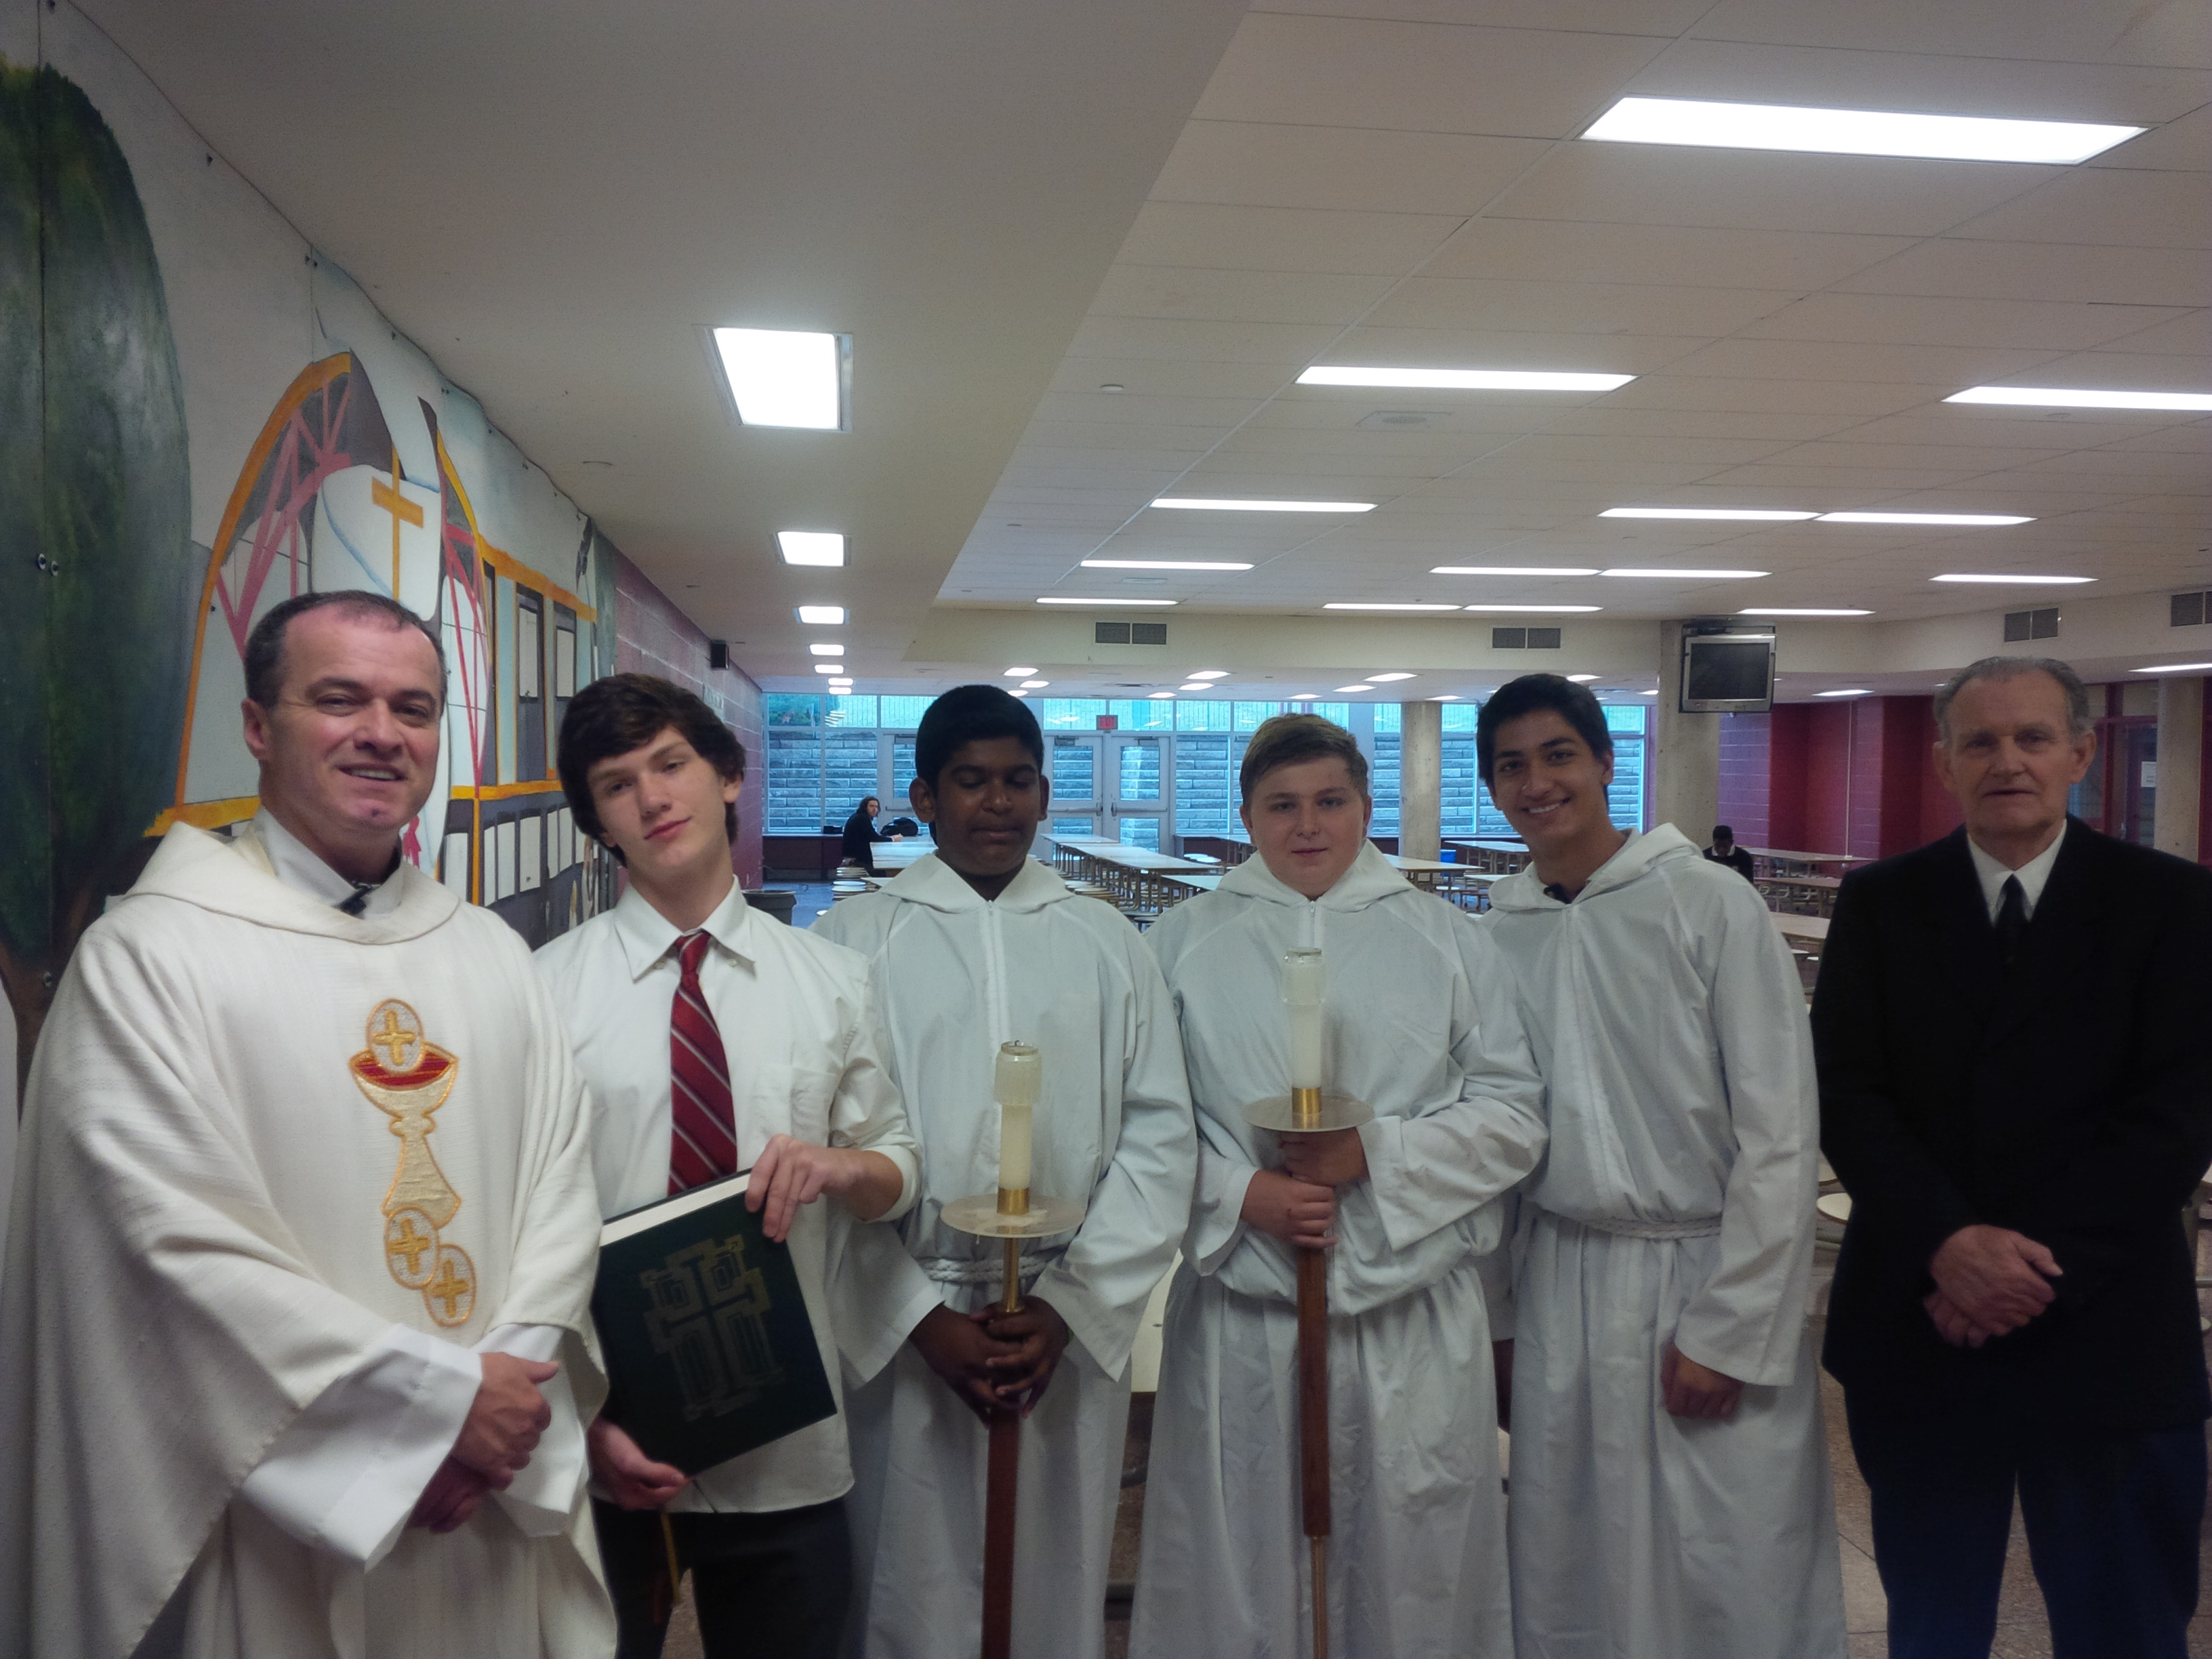 Father Murphy and students.jpg